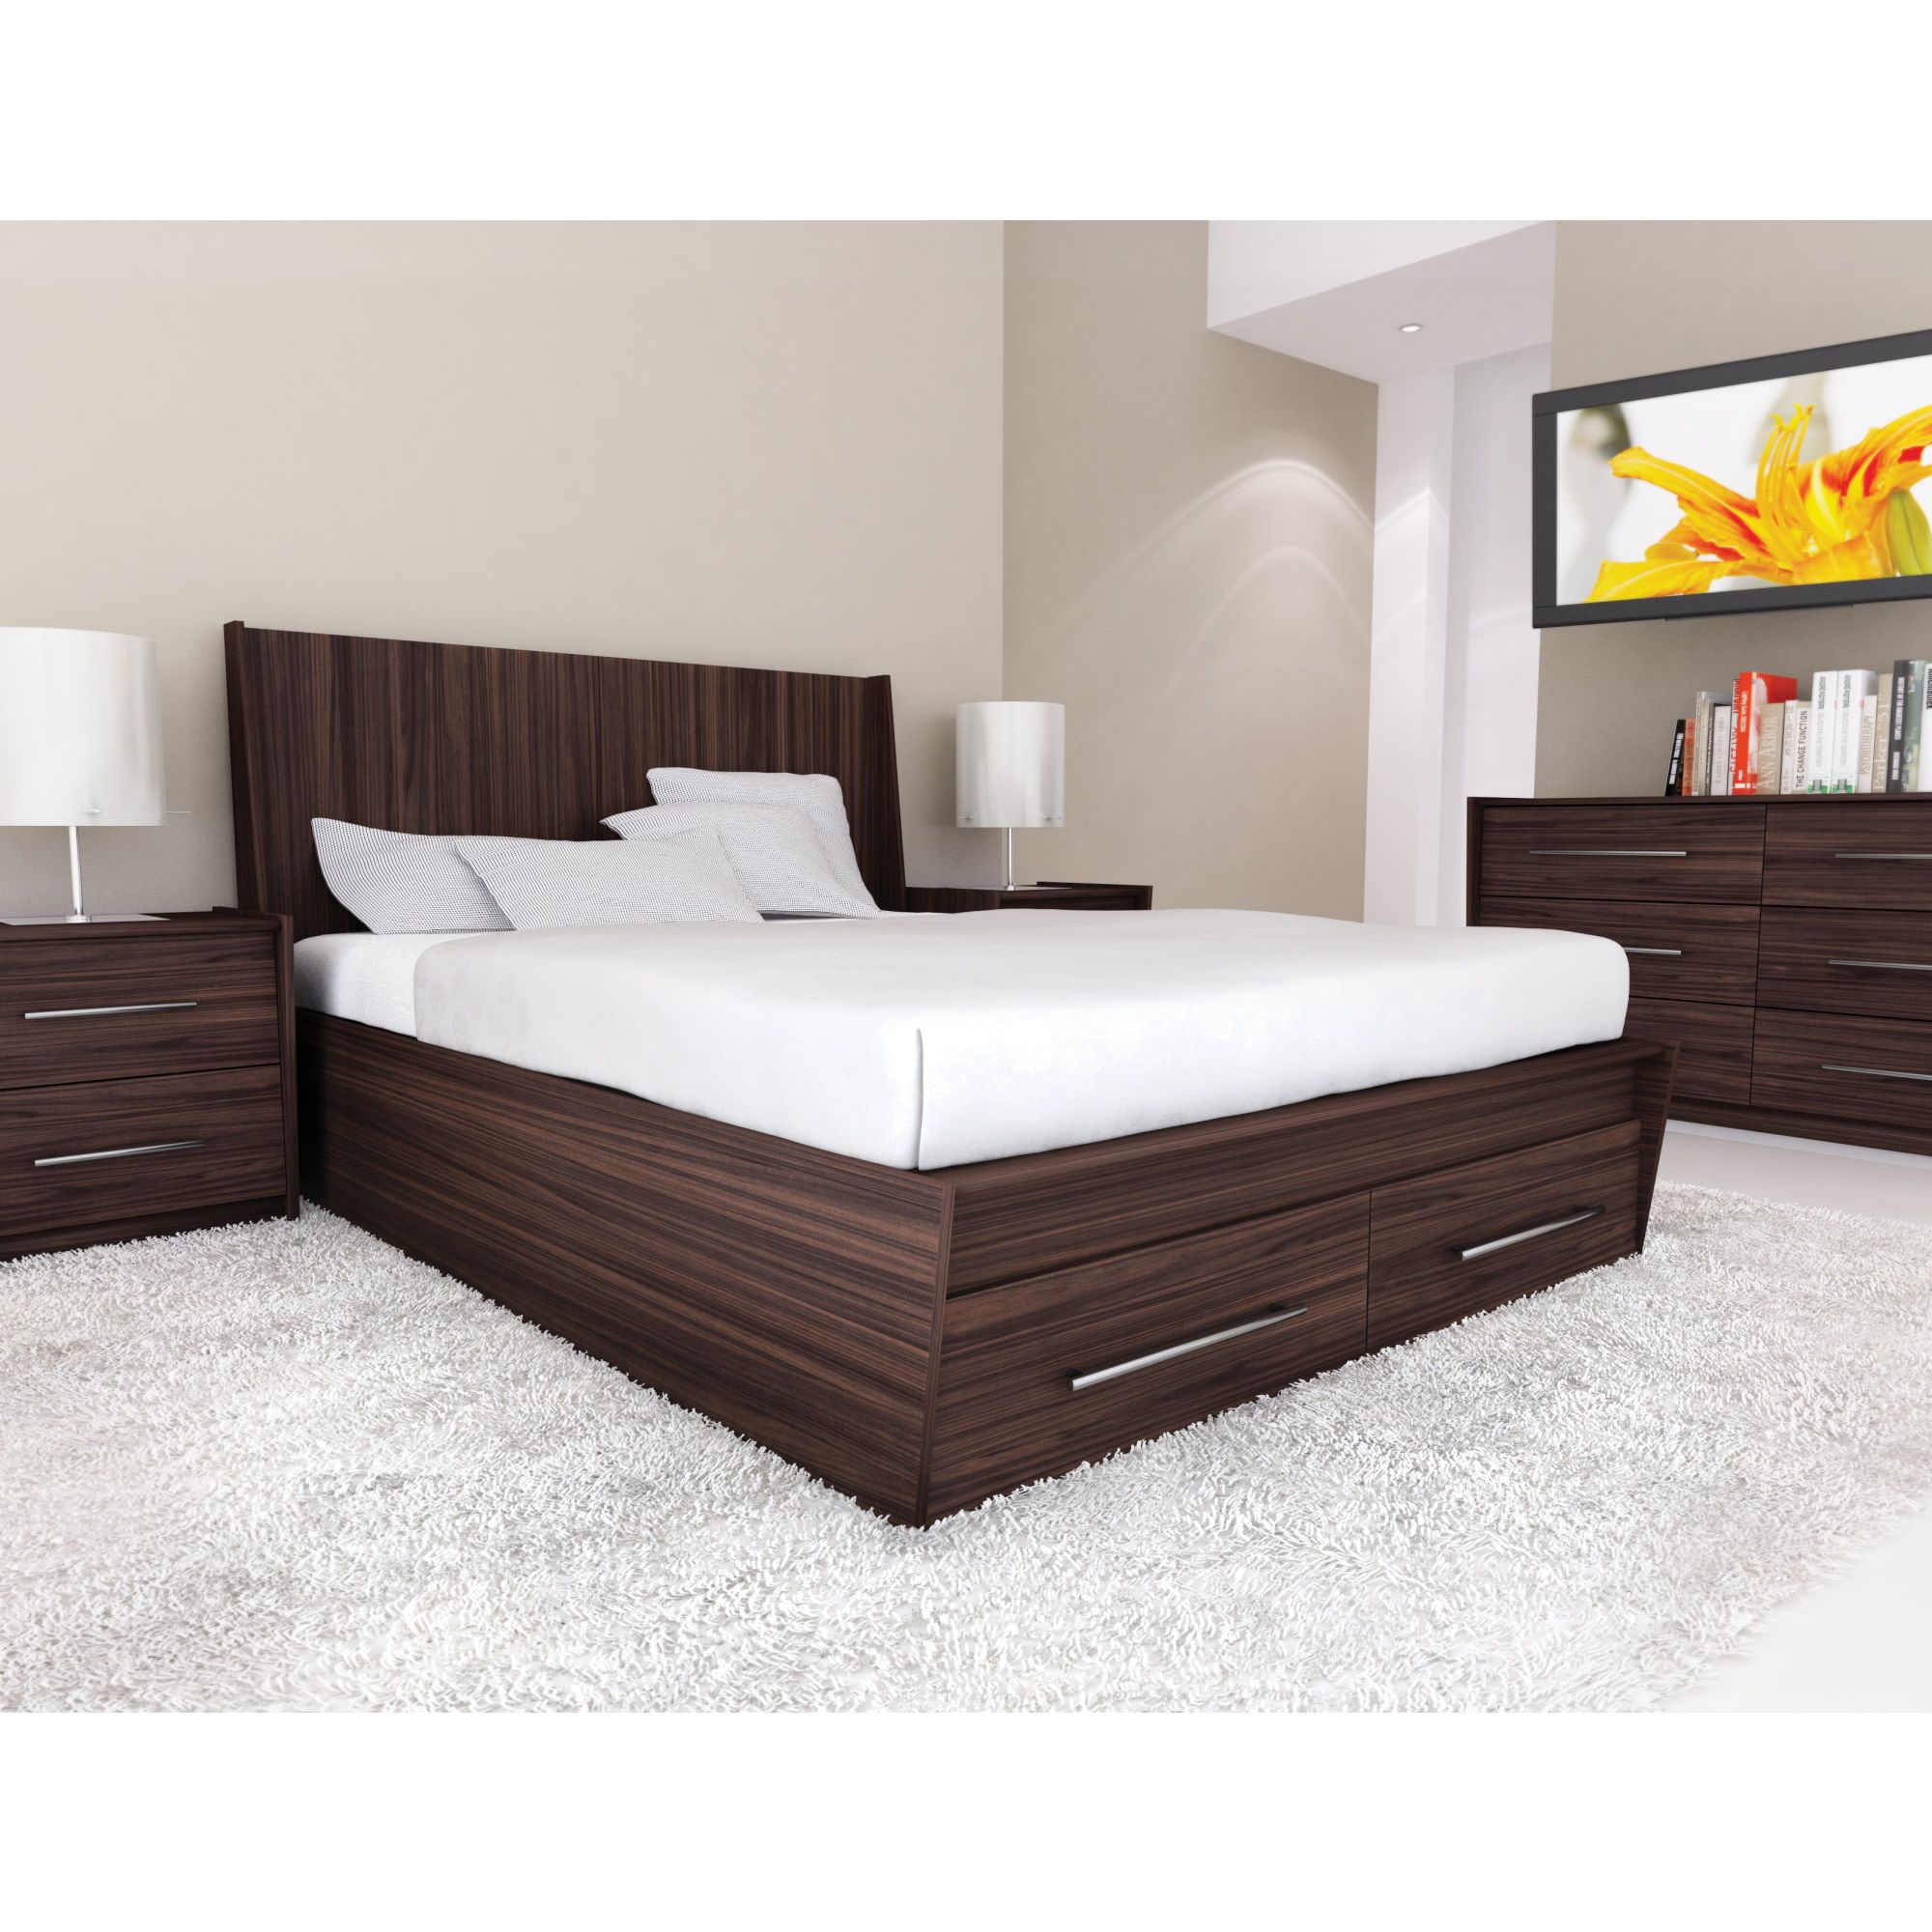 Bed designs for your comfortable bedroom interior design for Fevicol bed furniture design